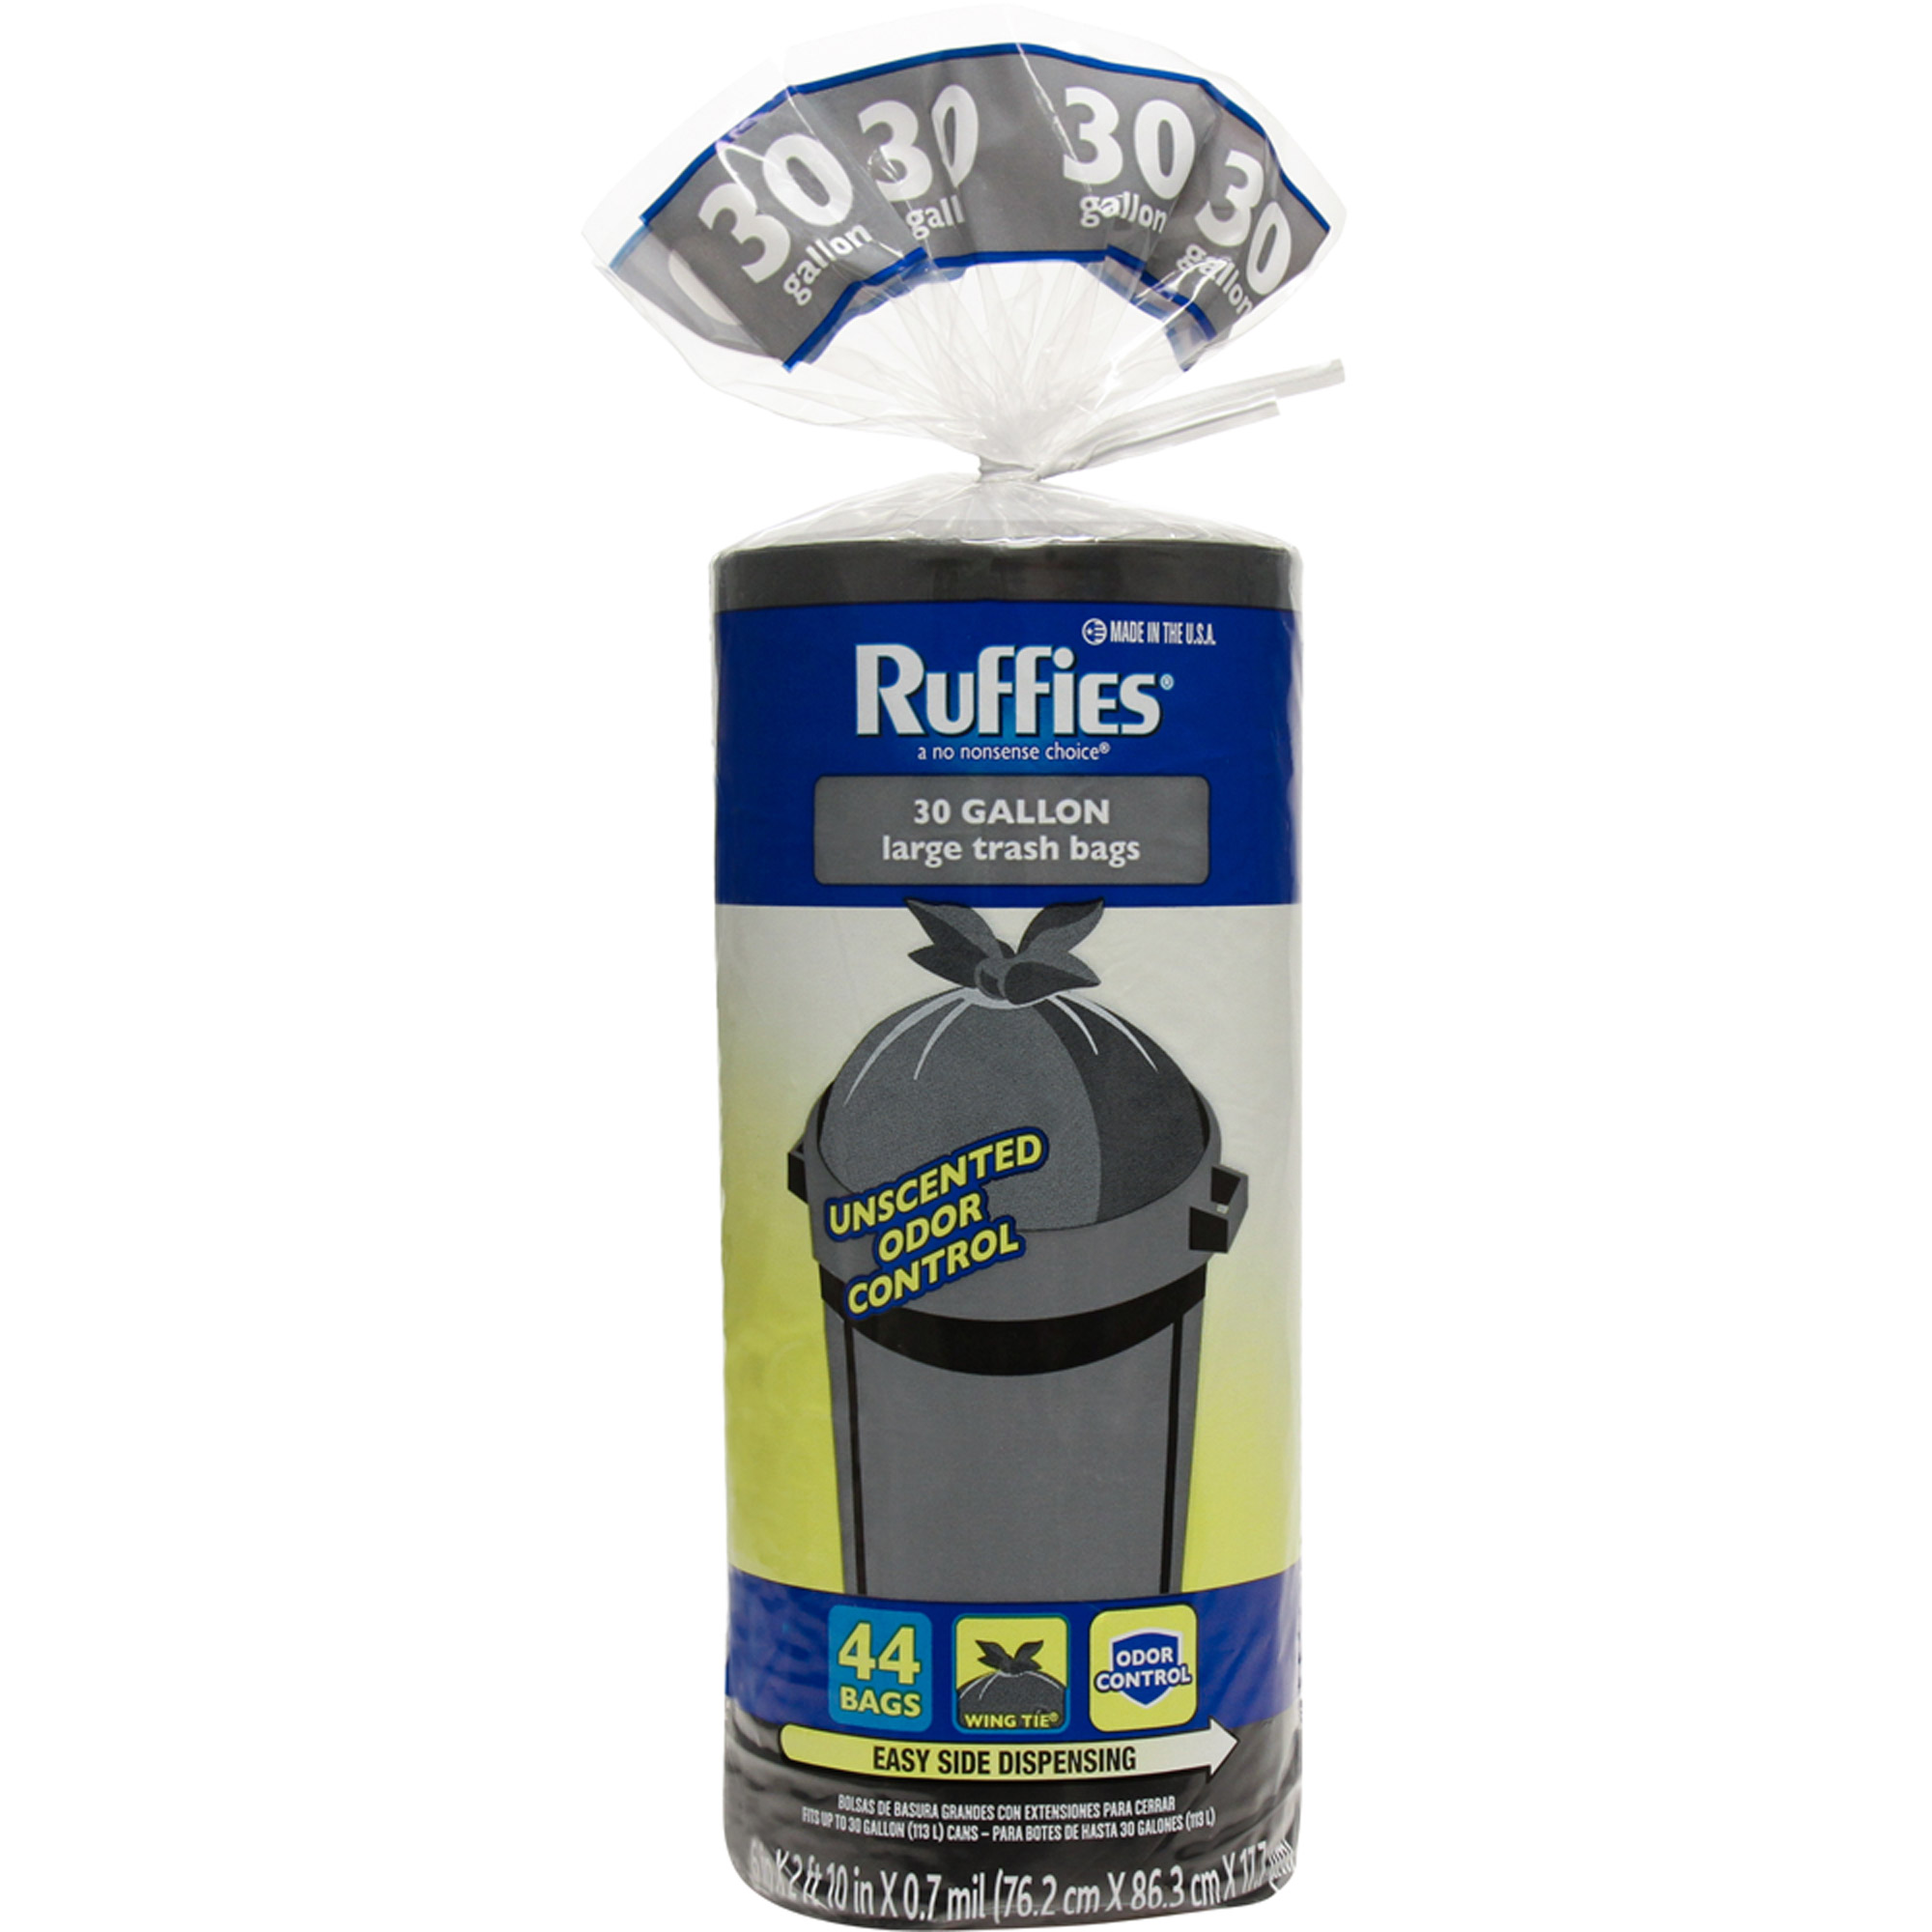 Ruffies Large Trash Bags, 30 gal, 44 count